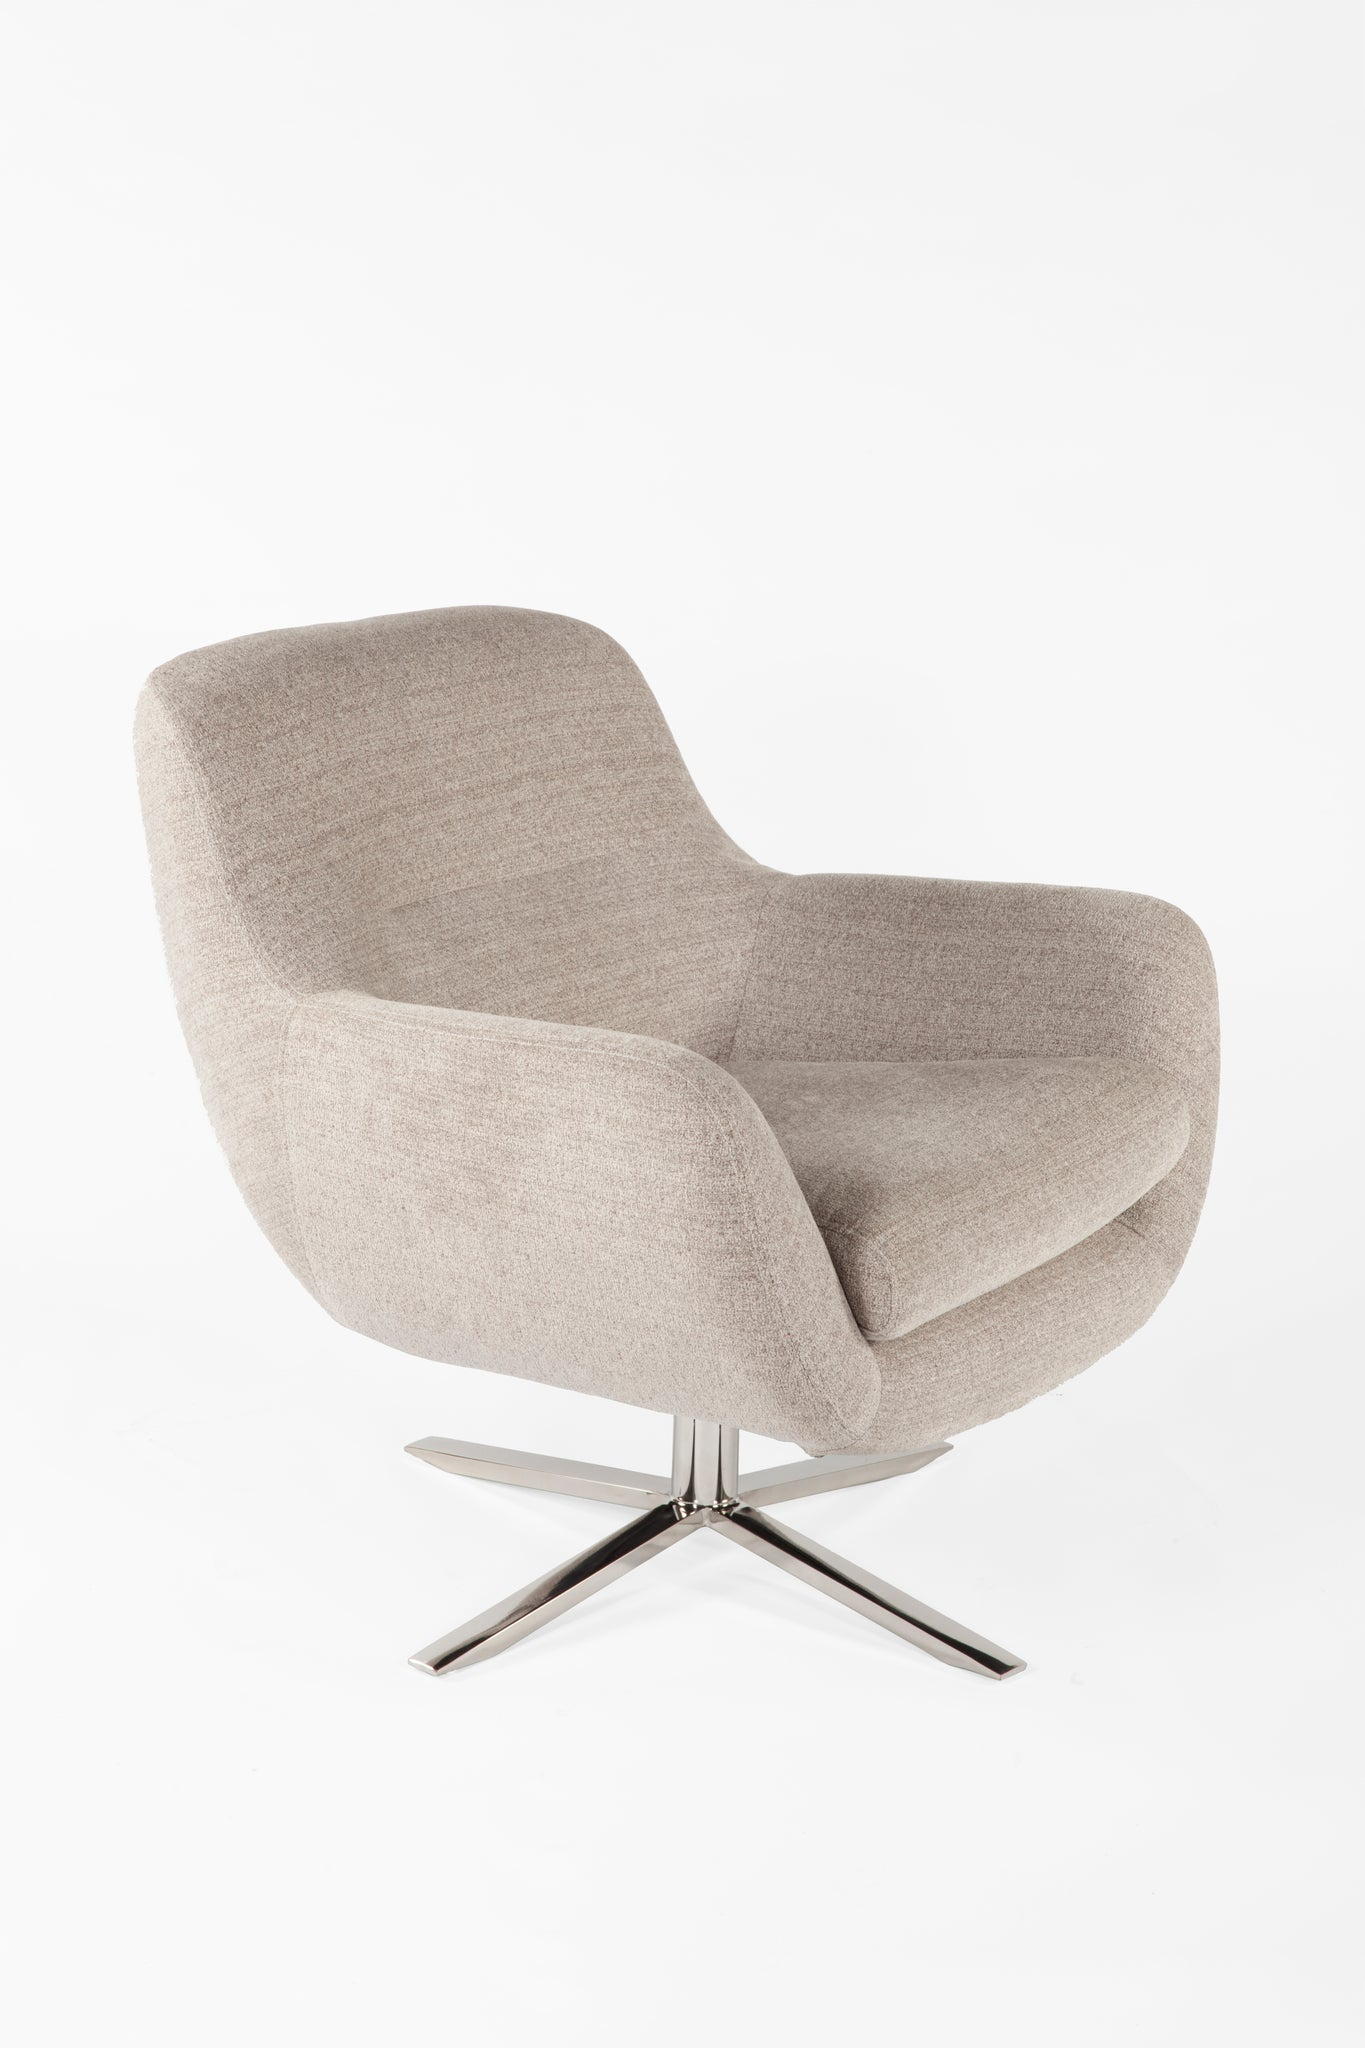 The Uge Lounge Chair 3